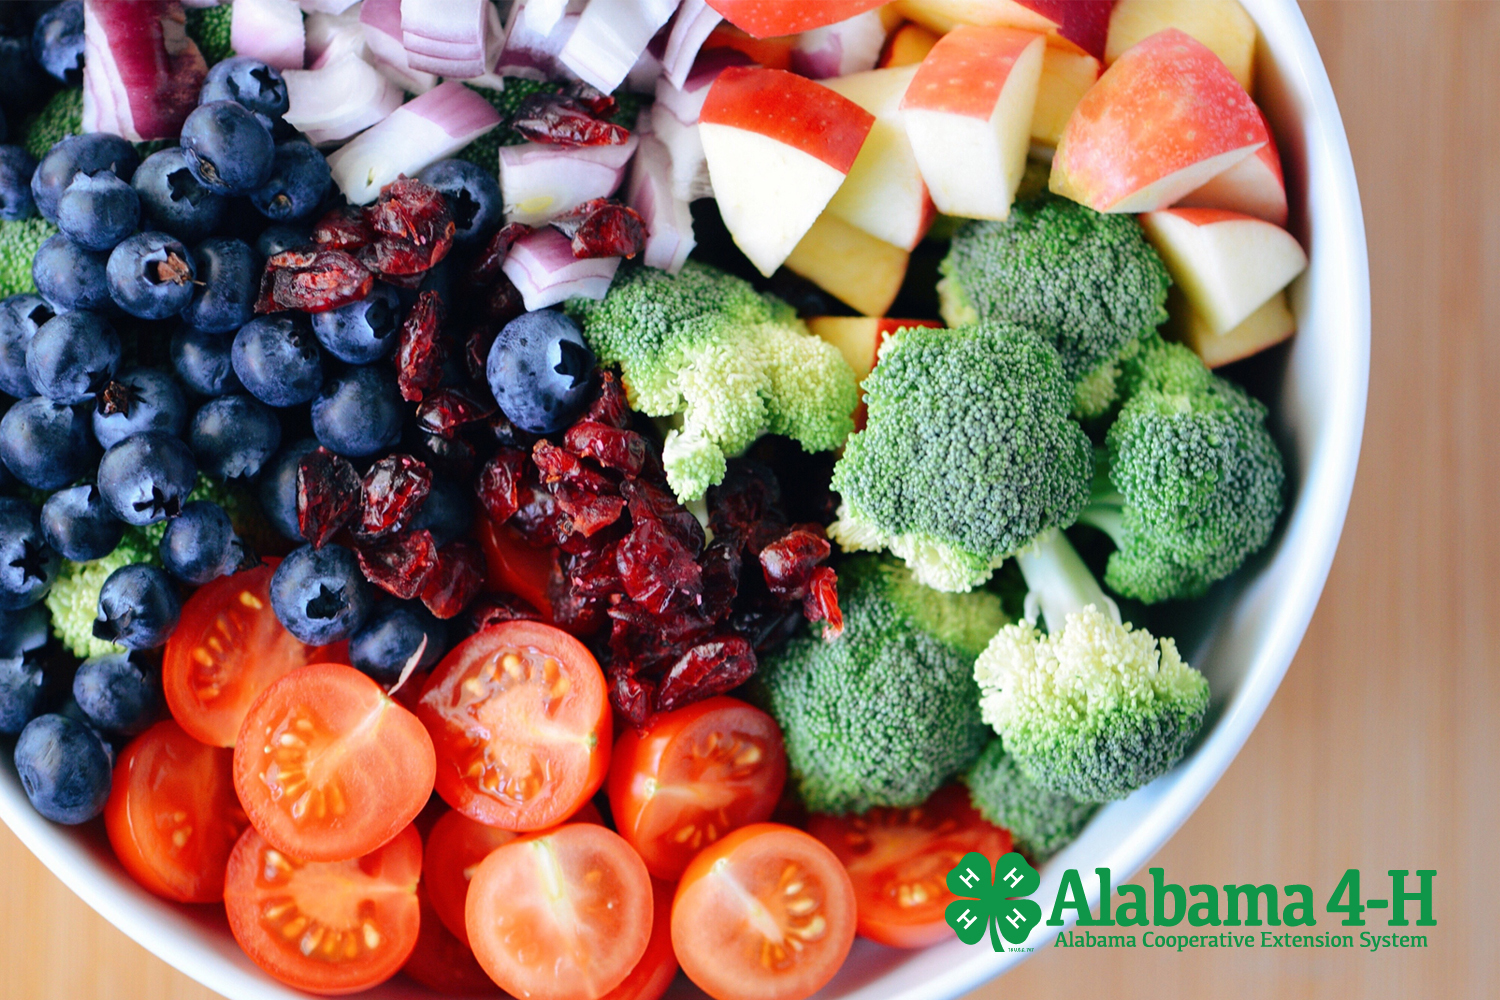 Alabama 4-H Chef 4-H; bowl of fruit and veggies